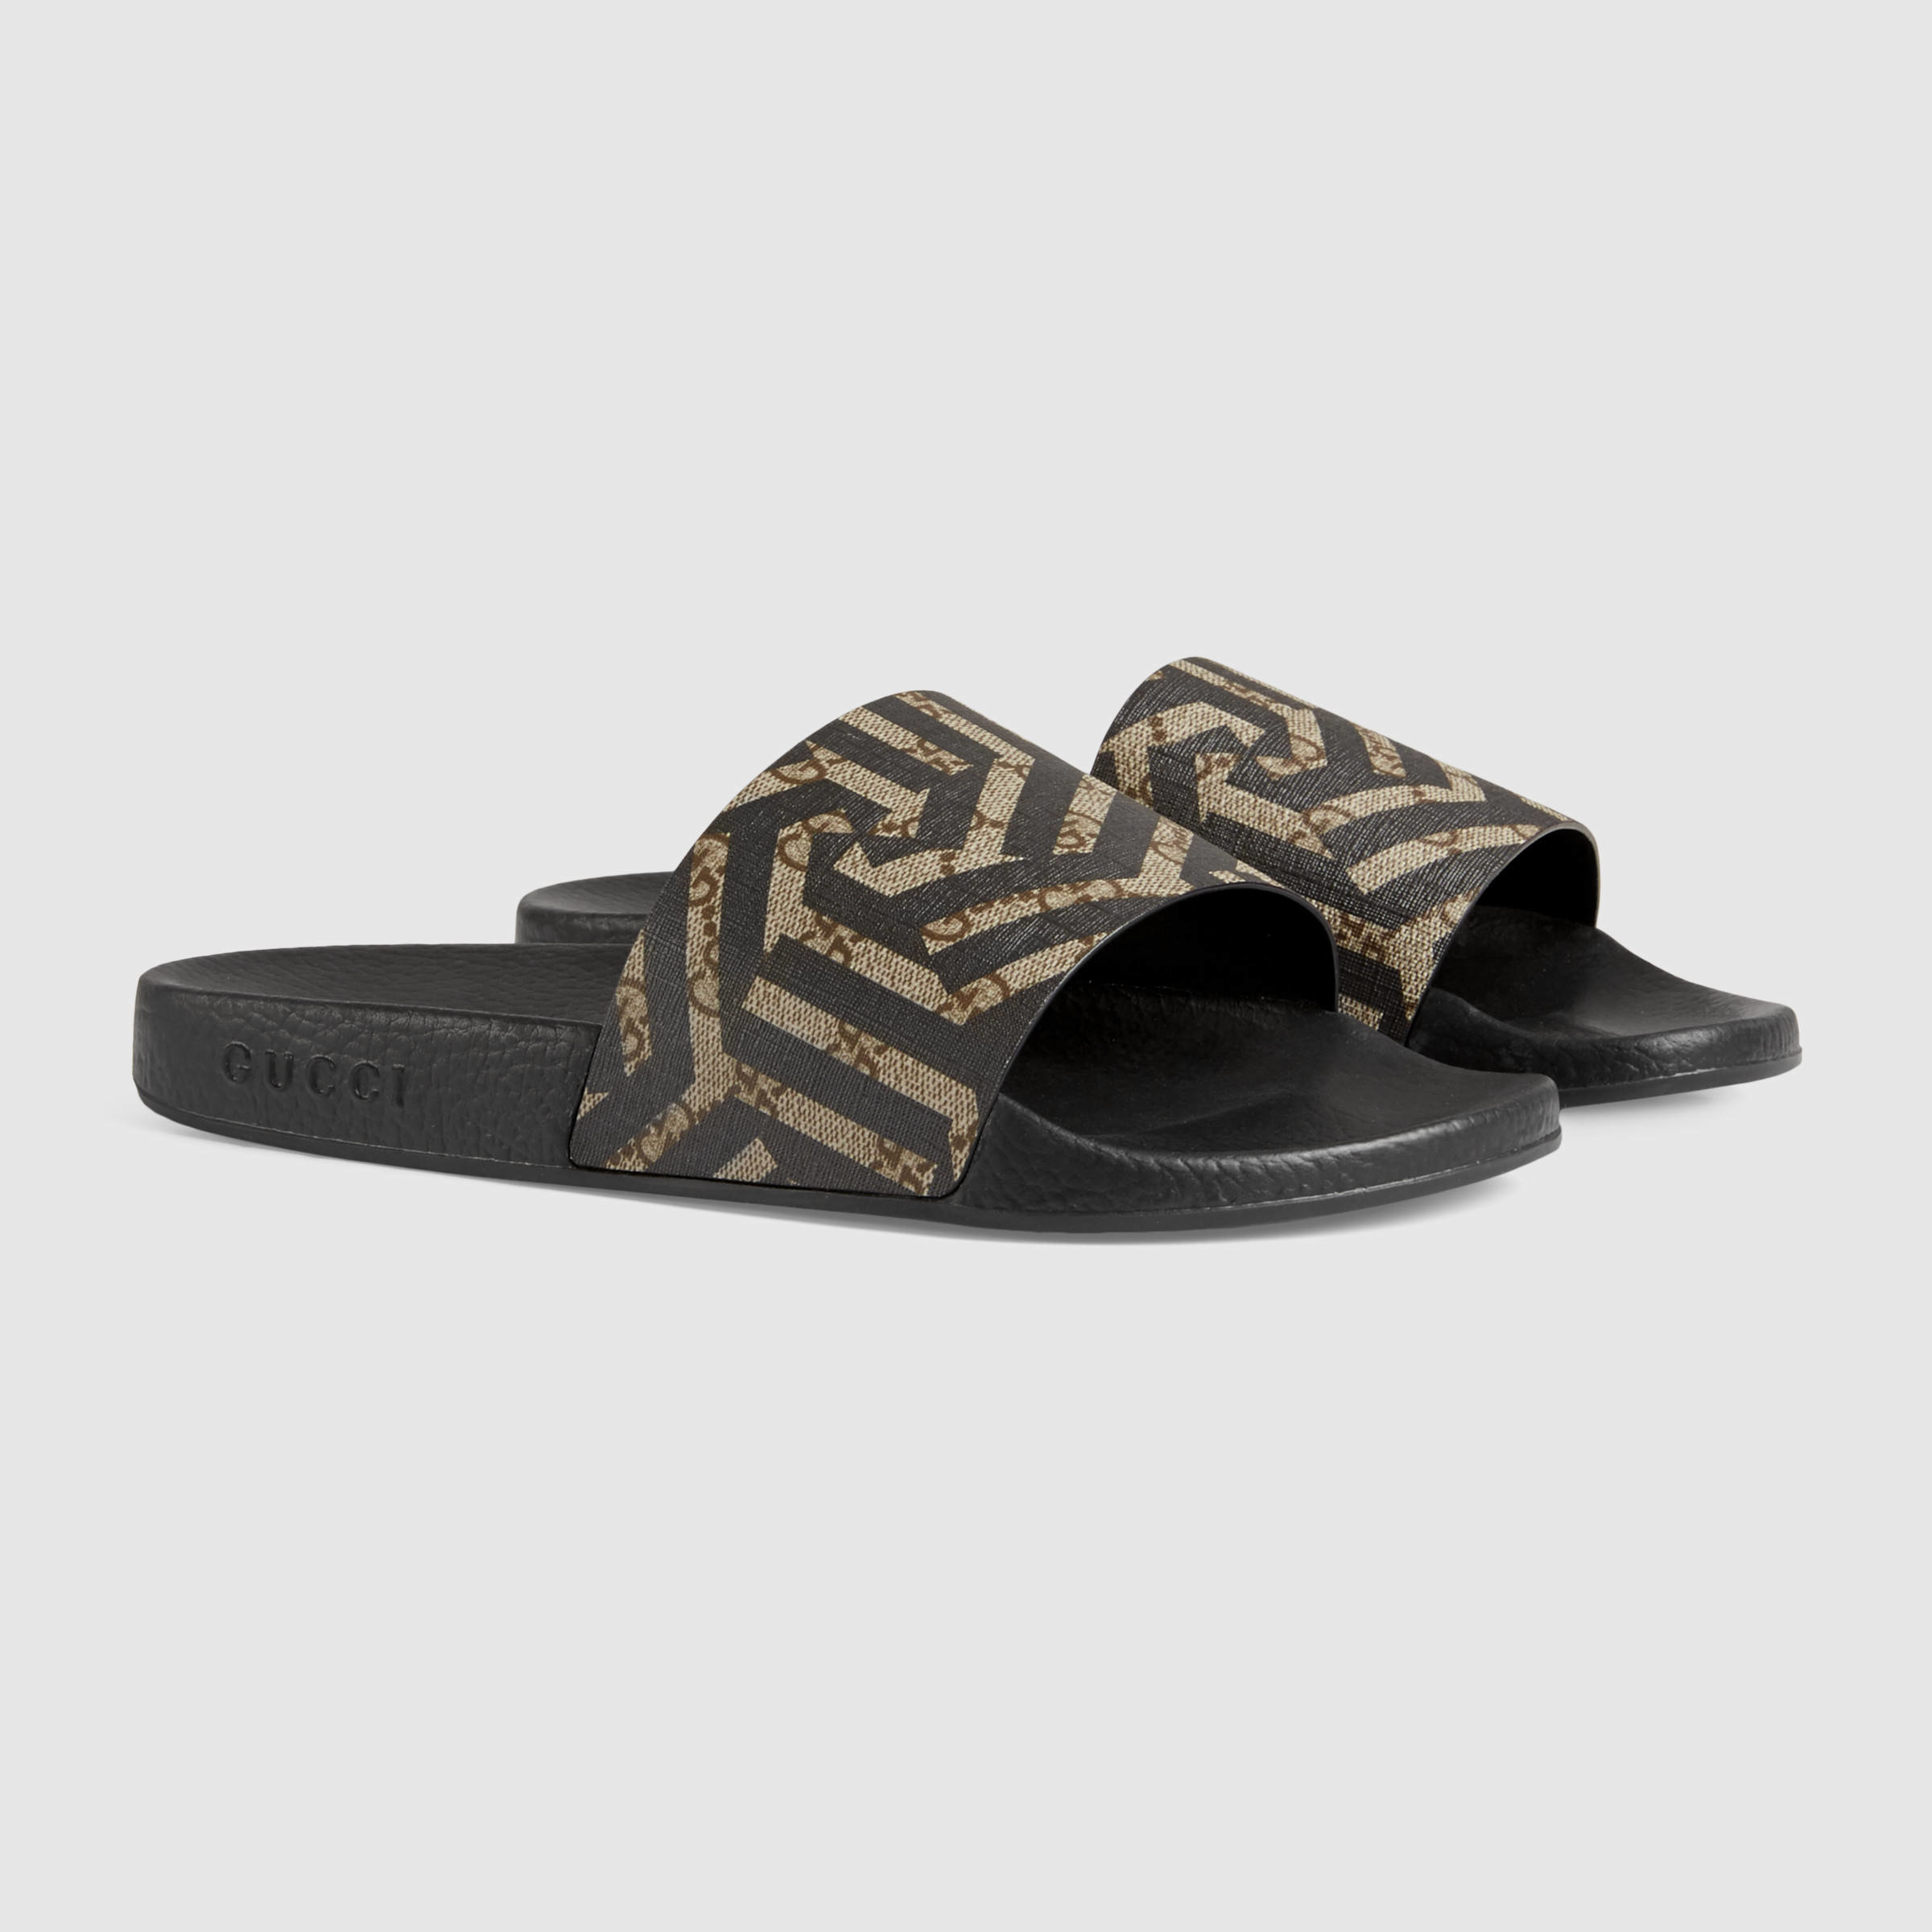 4a5bdcb0451 Gucci Gg Caleido Sandal in Black for Men - Lyst